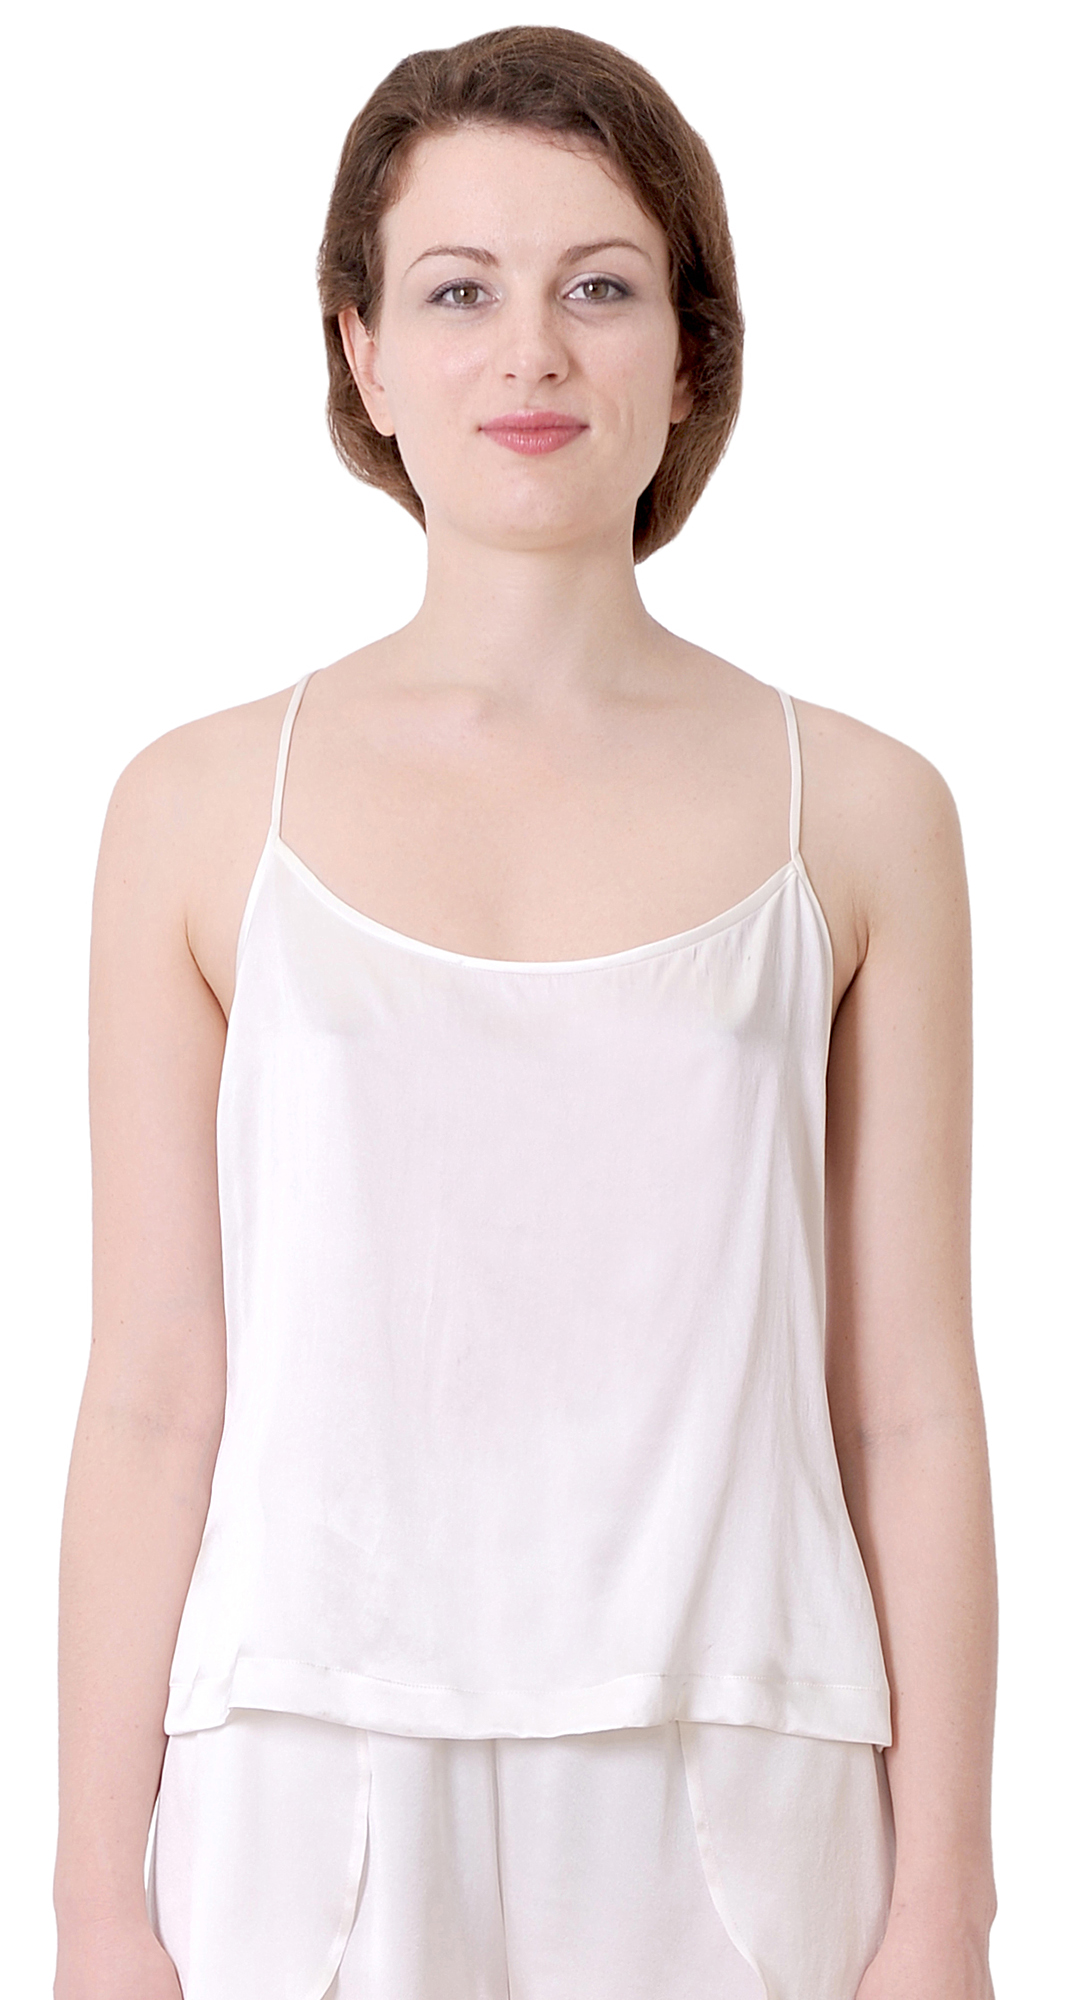 Camisoles are the perfect compliment to your tops. Utilize classic waist-length fits and stretchy fabric to tighten up your top layers. An open bust camisole flattens your tummy without flattening your bust.